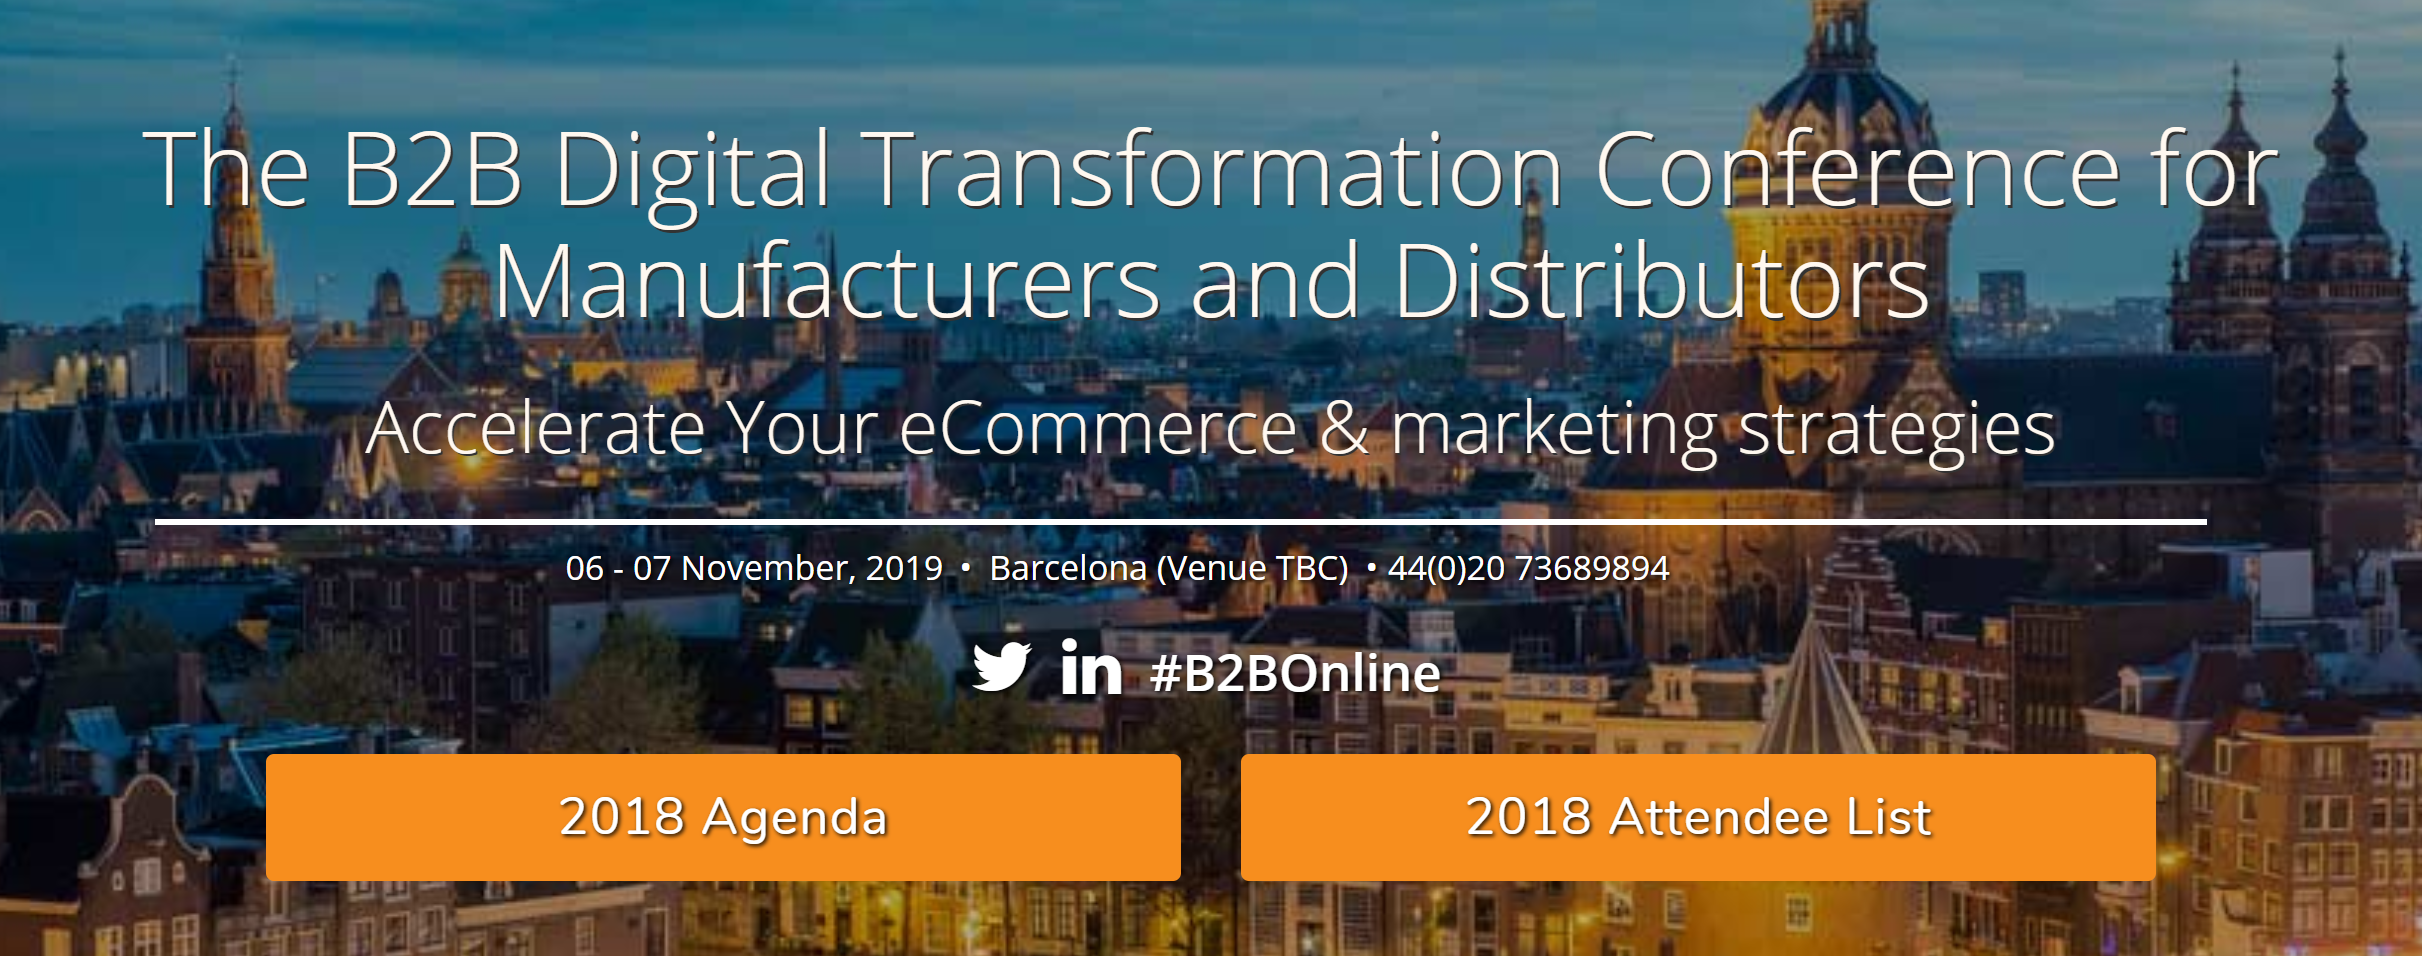 B2B Digital Transformation Conference